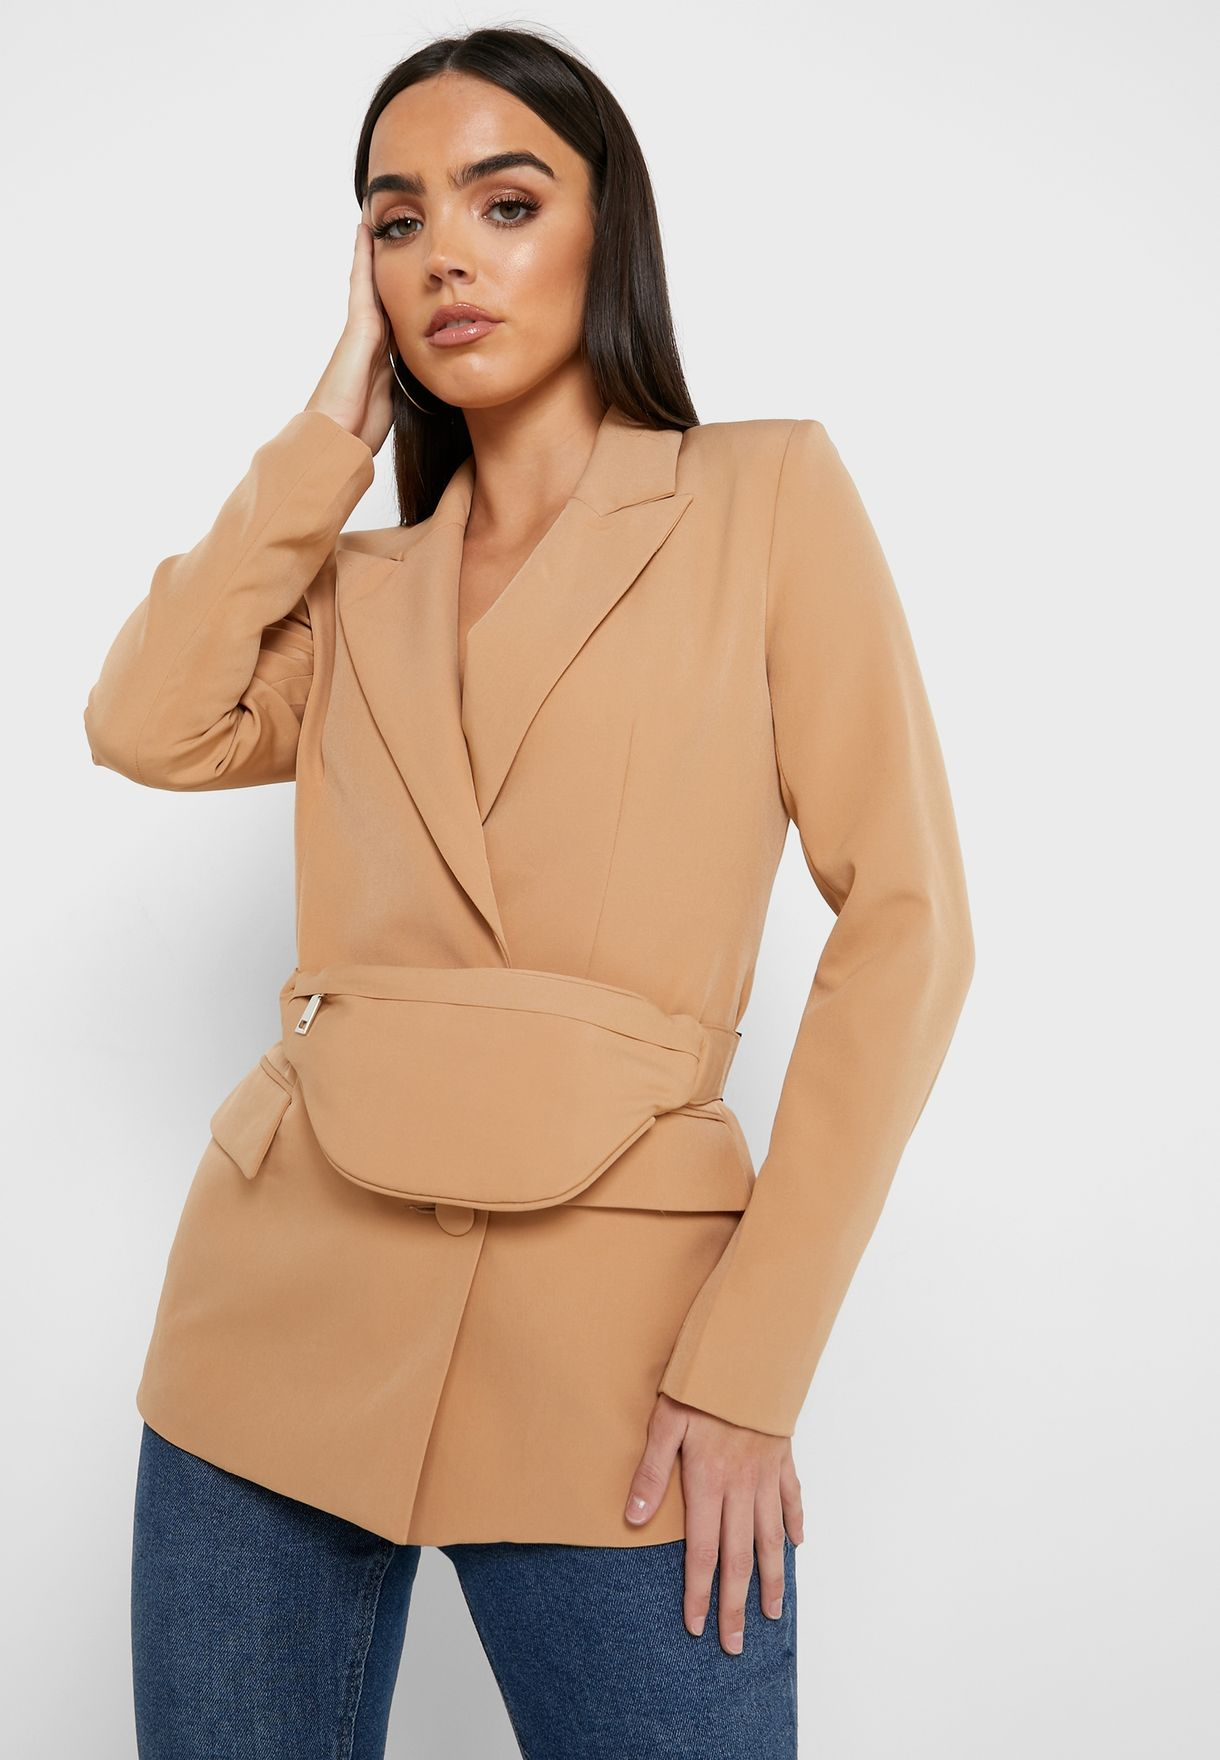 Tailored Blazer with Bum Bag Co-Ord